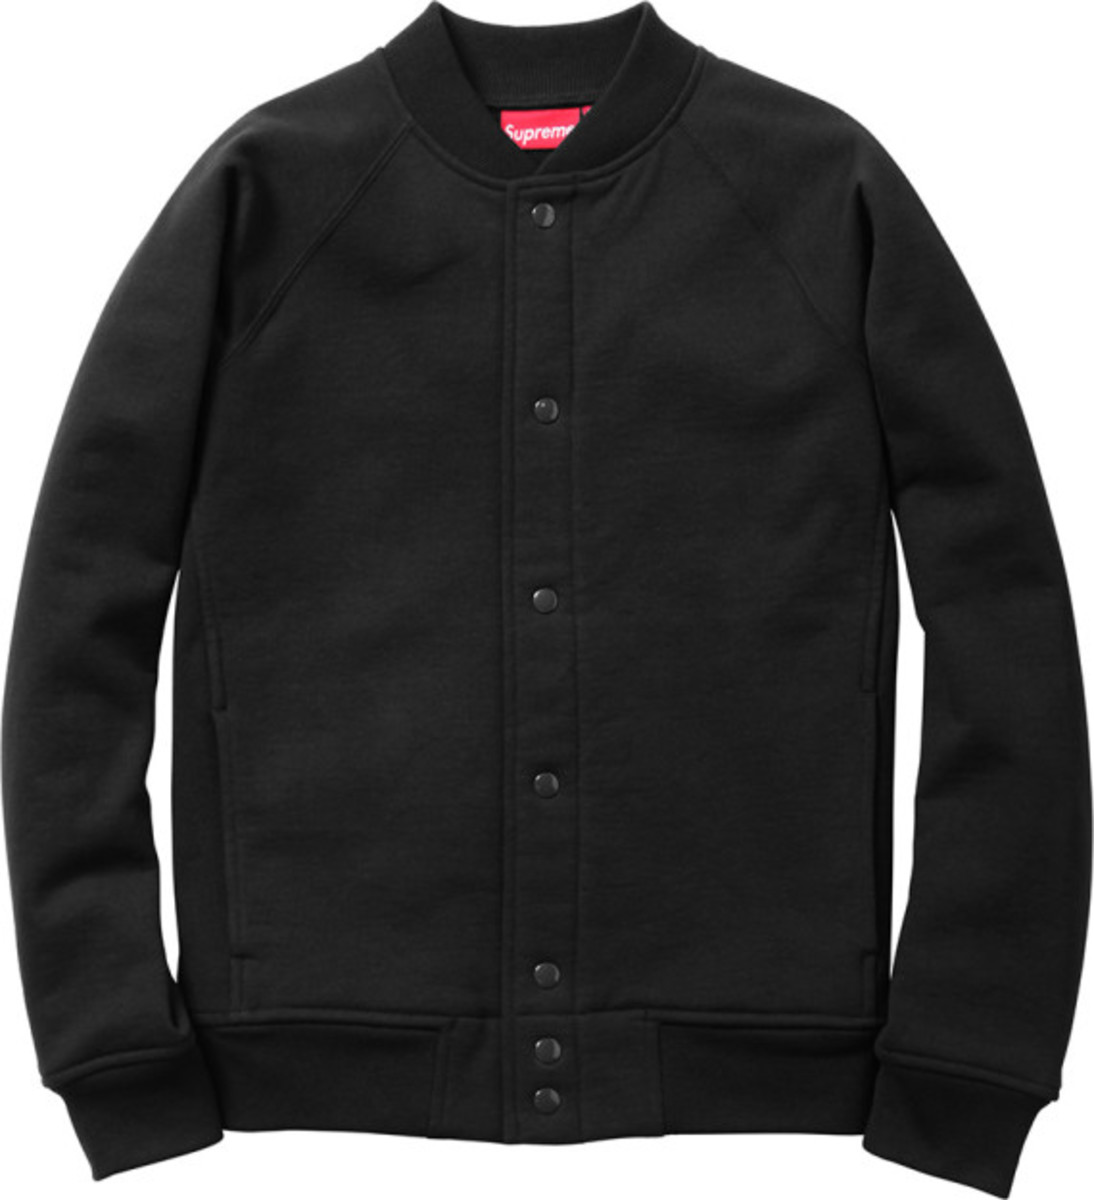 supreme-fall-winter-2013-apparel-collection-139